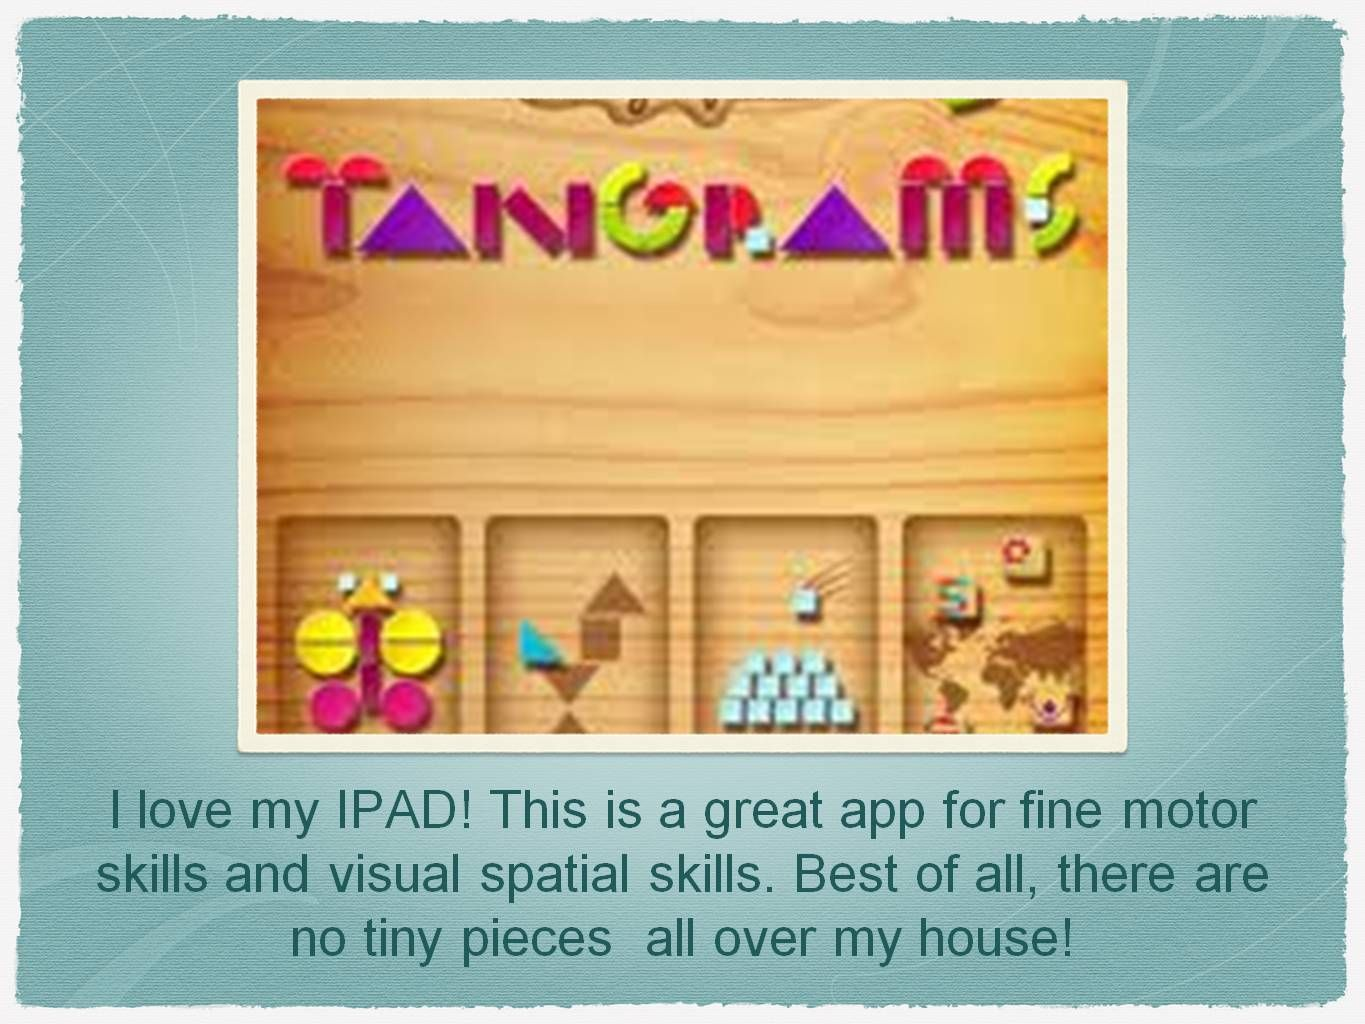 Great App For Fine Motor Skills And Visual Spatial Skills